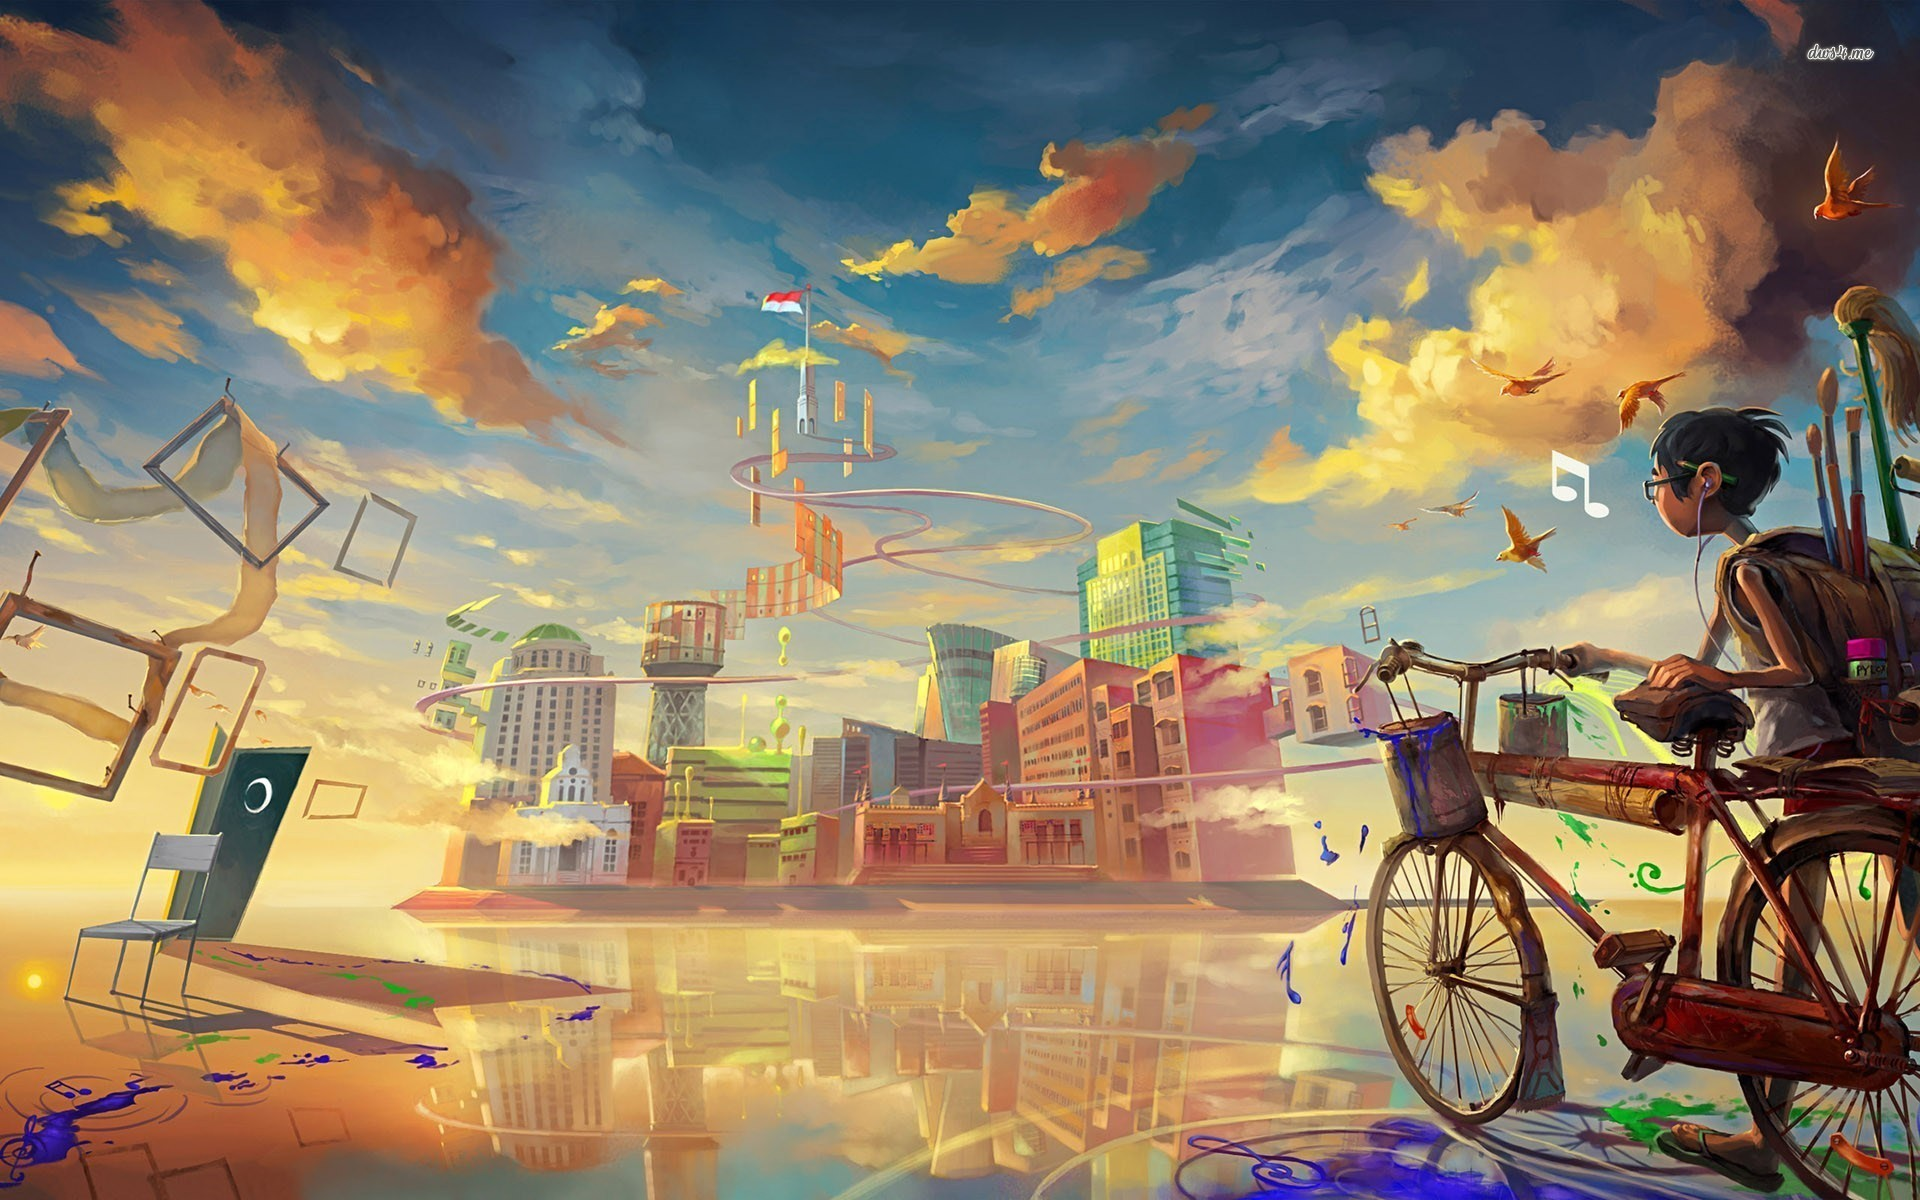 Res: 1920x1200, ... Painting a fantasy world wallpaper  ...